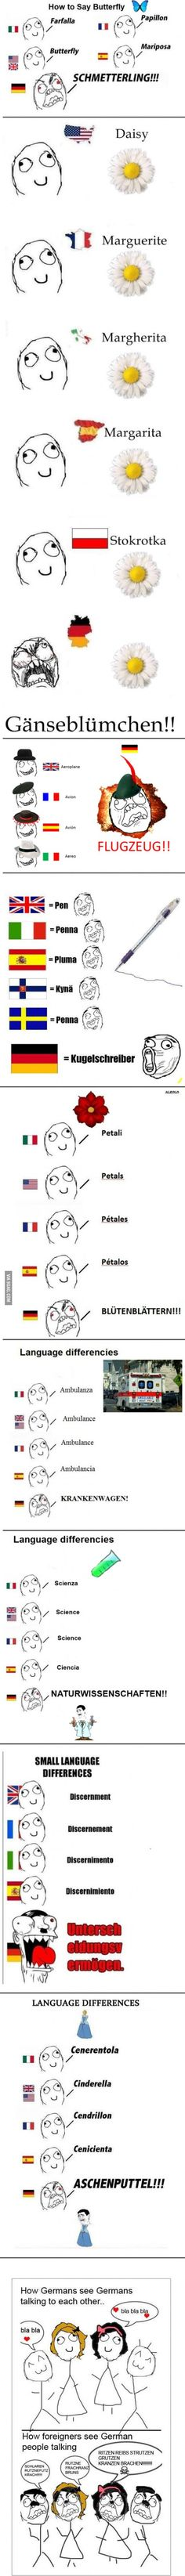 Germans and their angry language